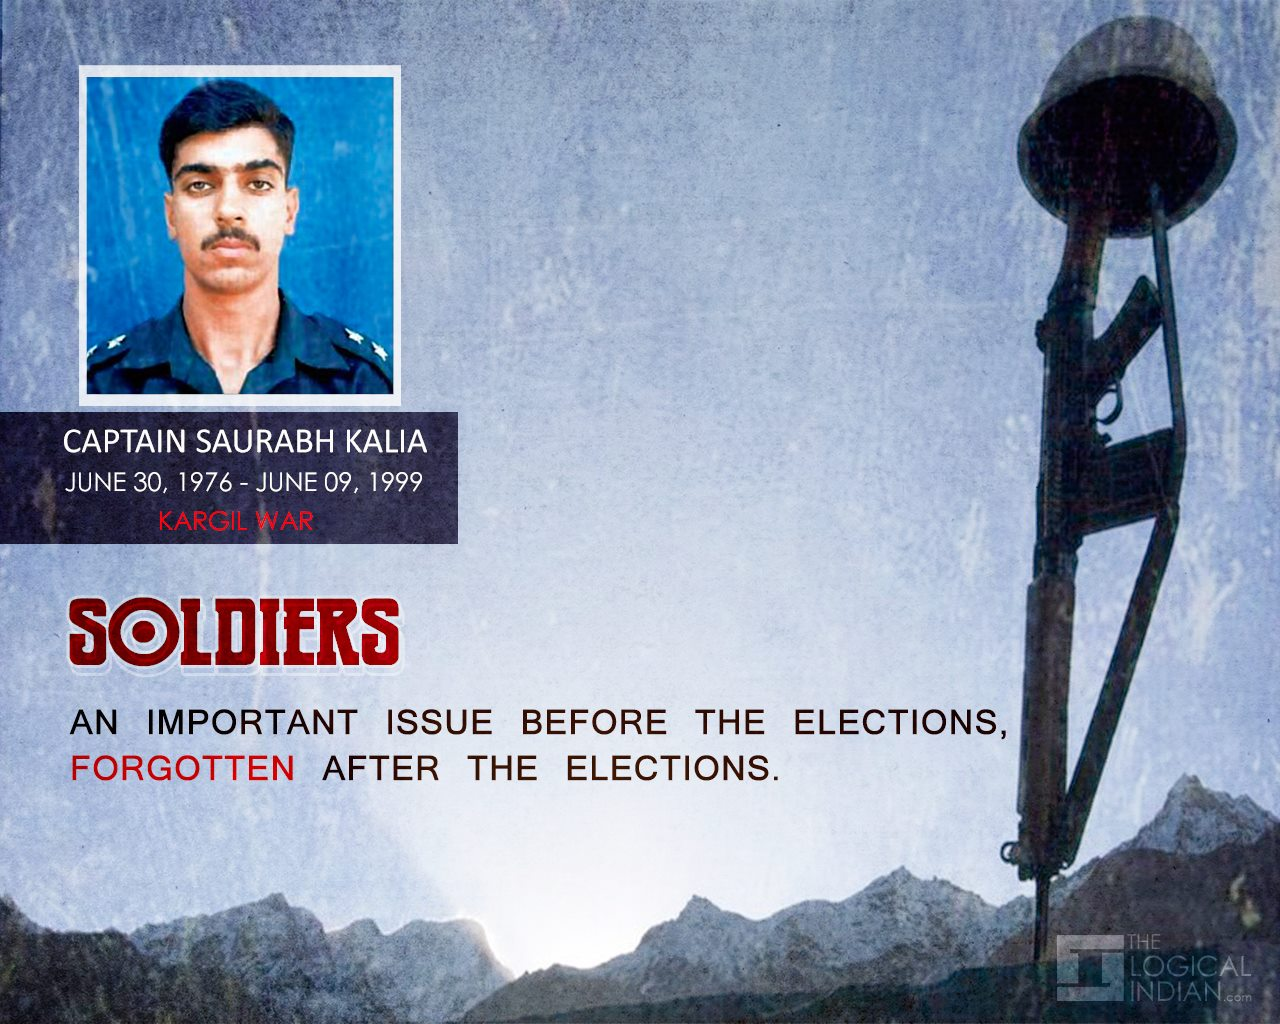 SOLDIERS: An Imp. Issue Before The Elections, Forgotten After The Elections